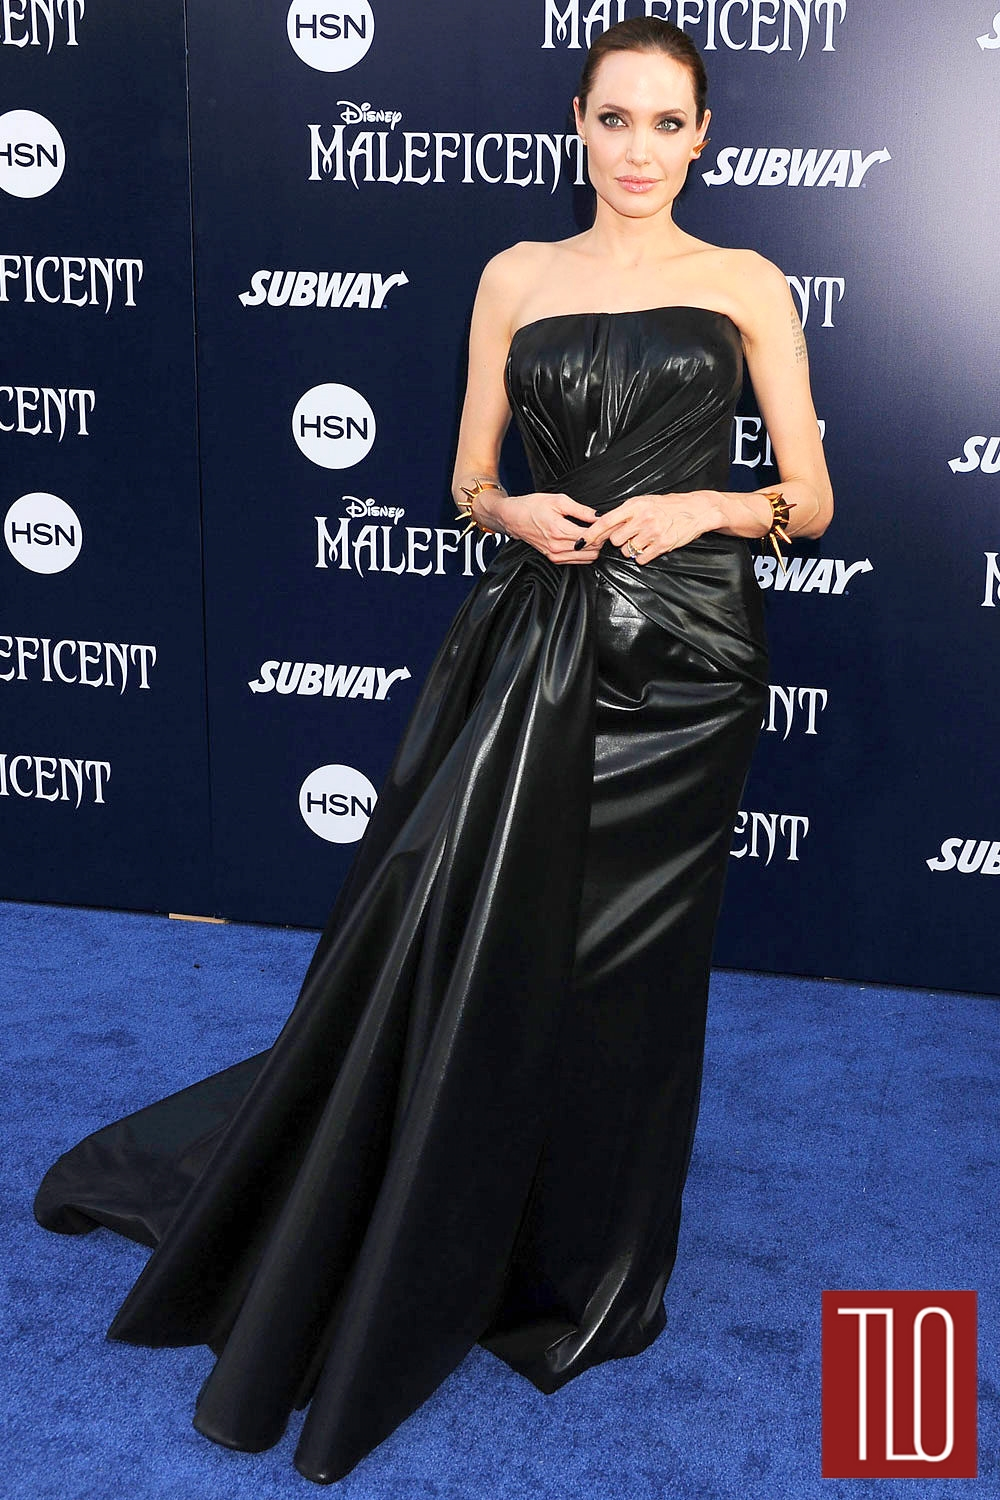 Angelina-Jolie-Atelier-Versace-Maleficent-World-Premiere-Tom-Lorenzo-Site-TLO (1)